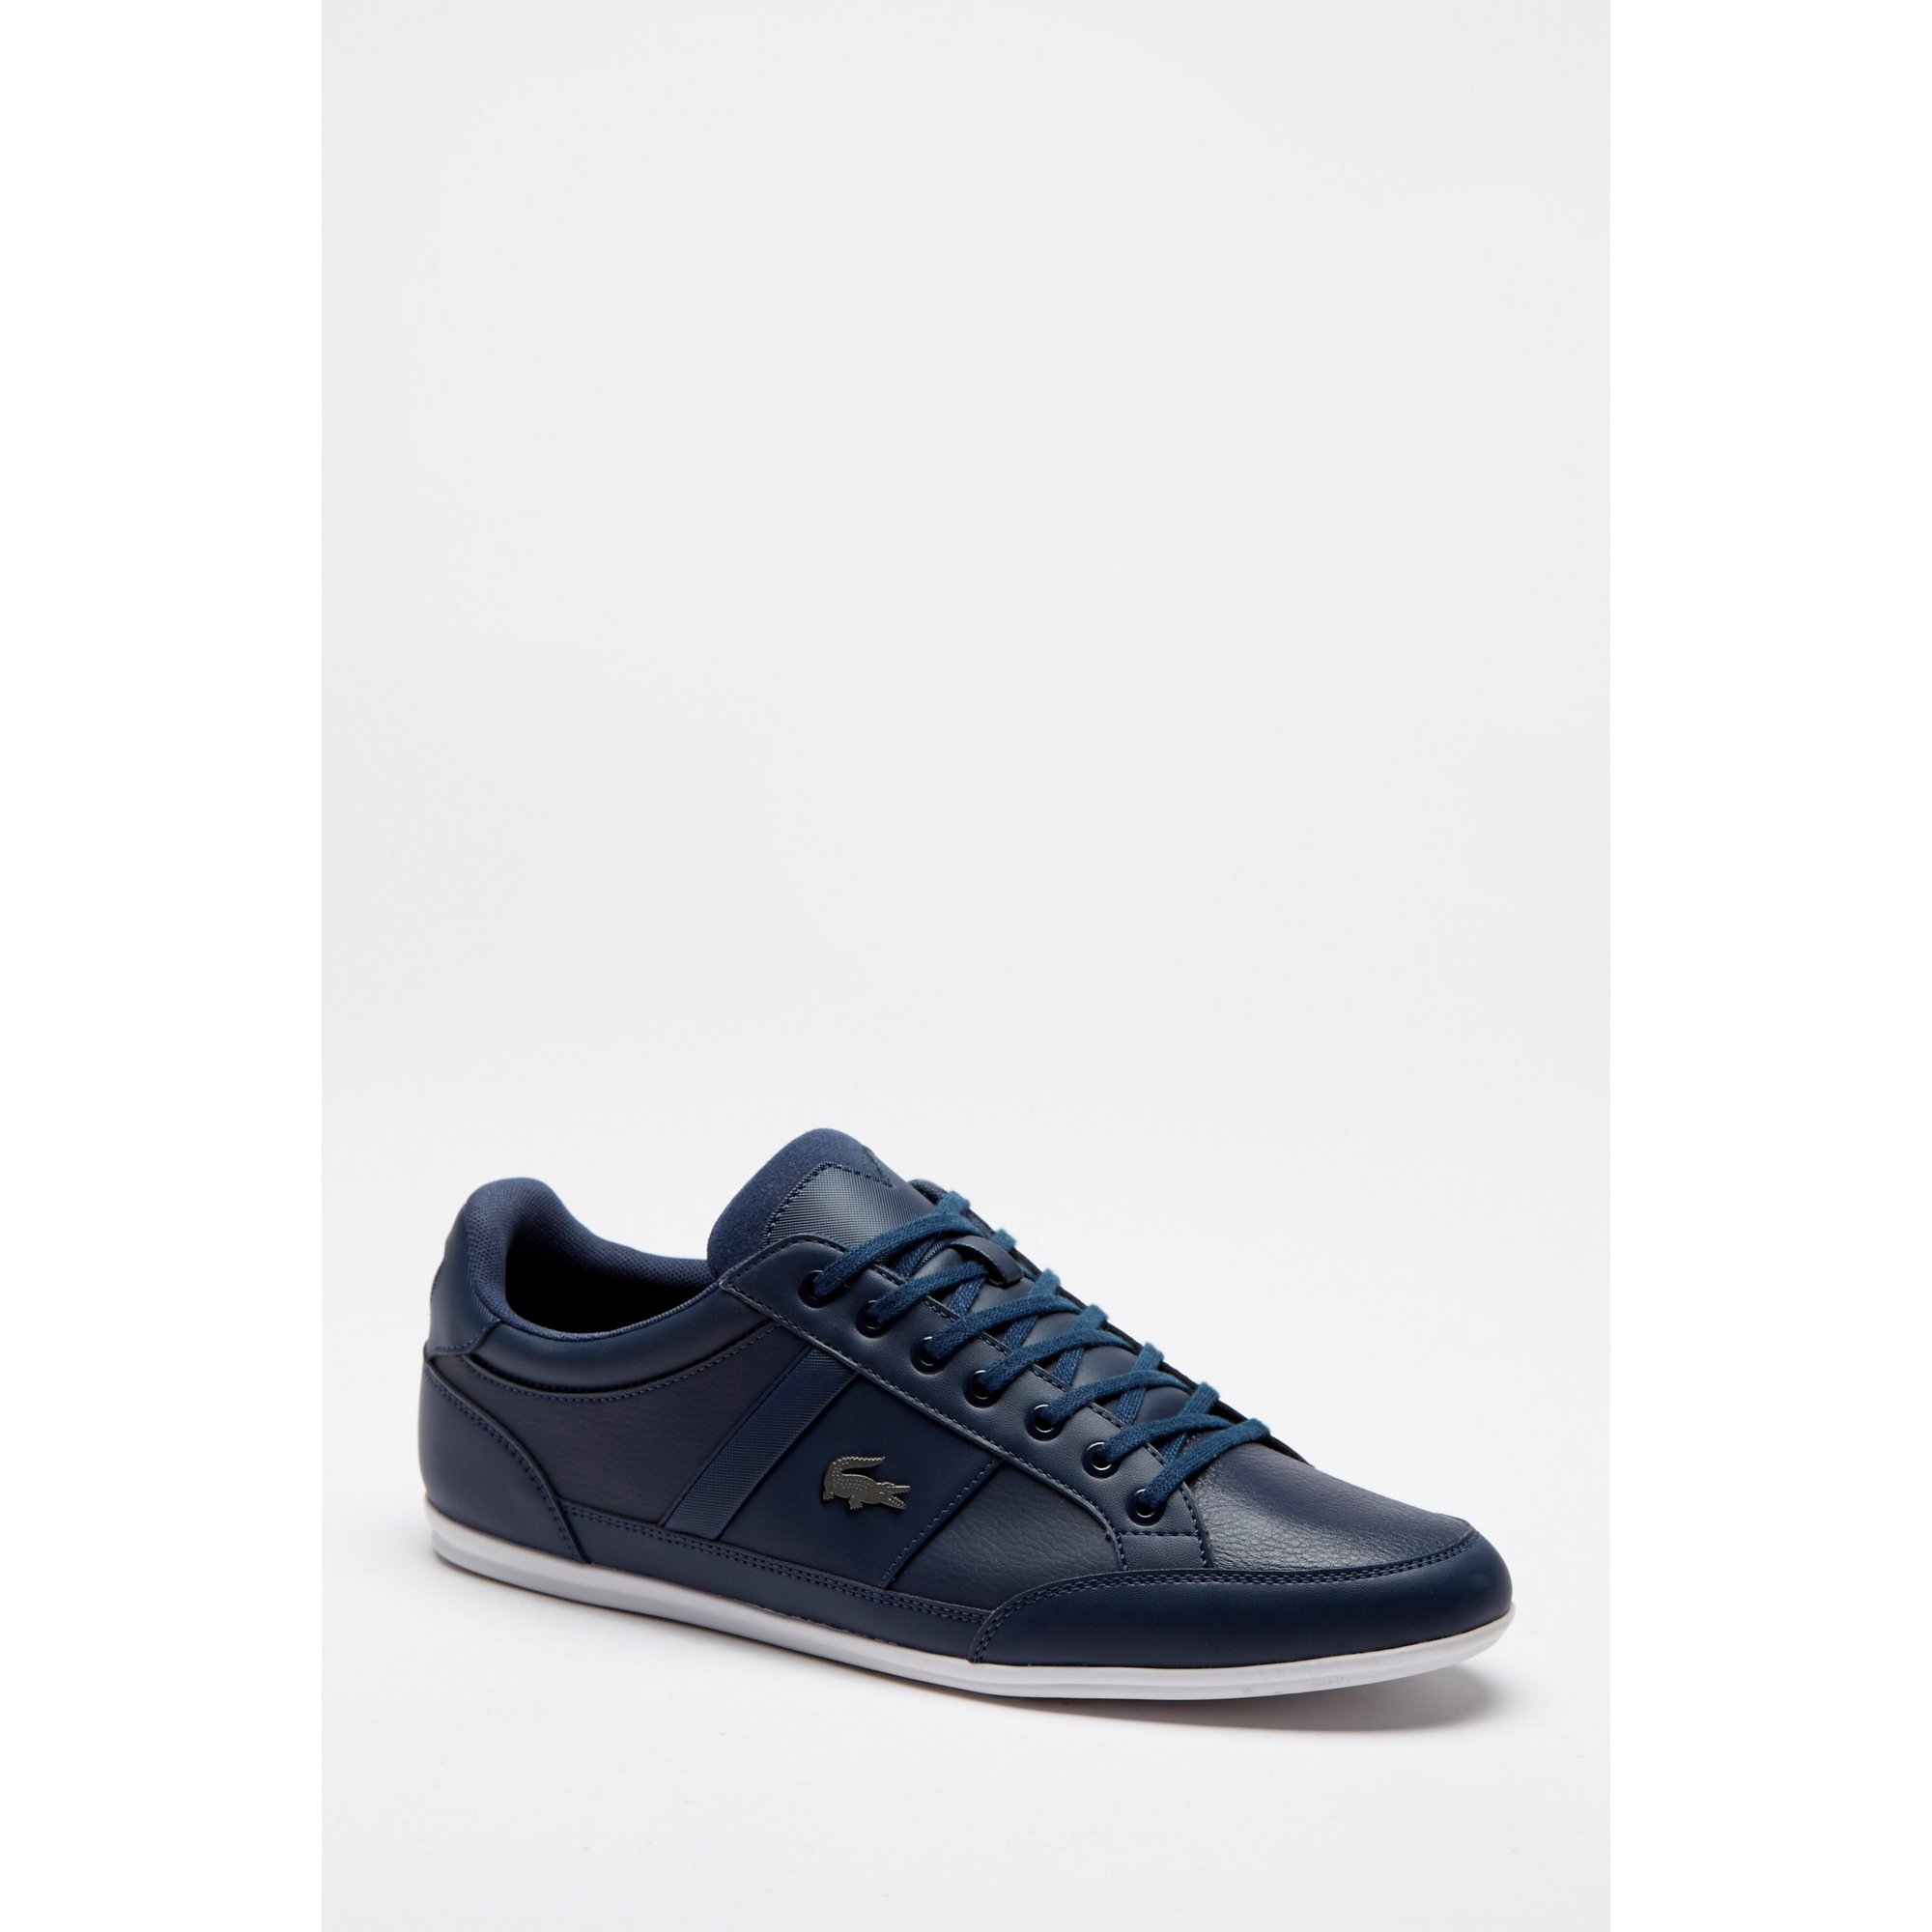 Image of Lacoste Chaymon Club Trainers